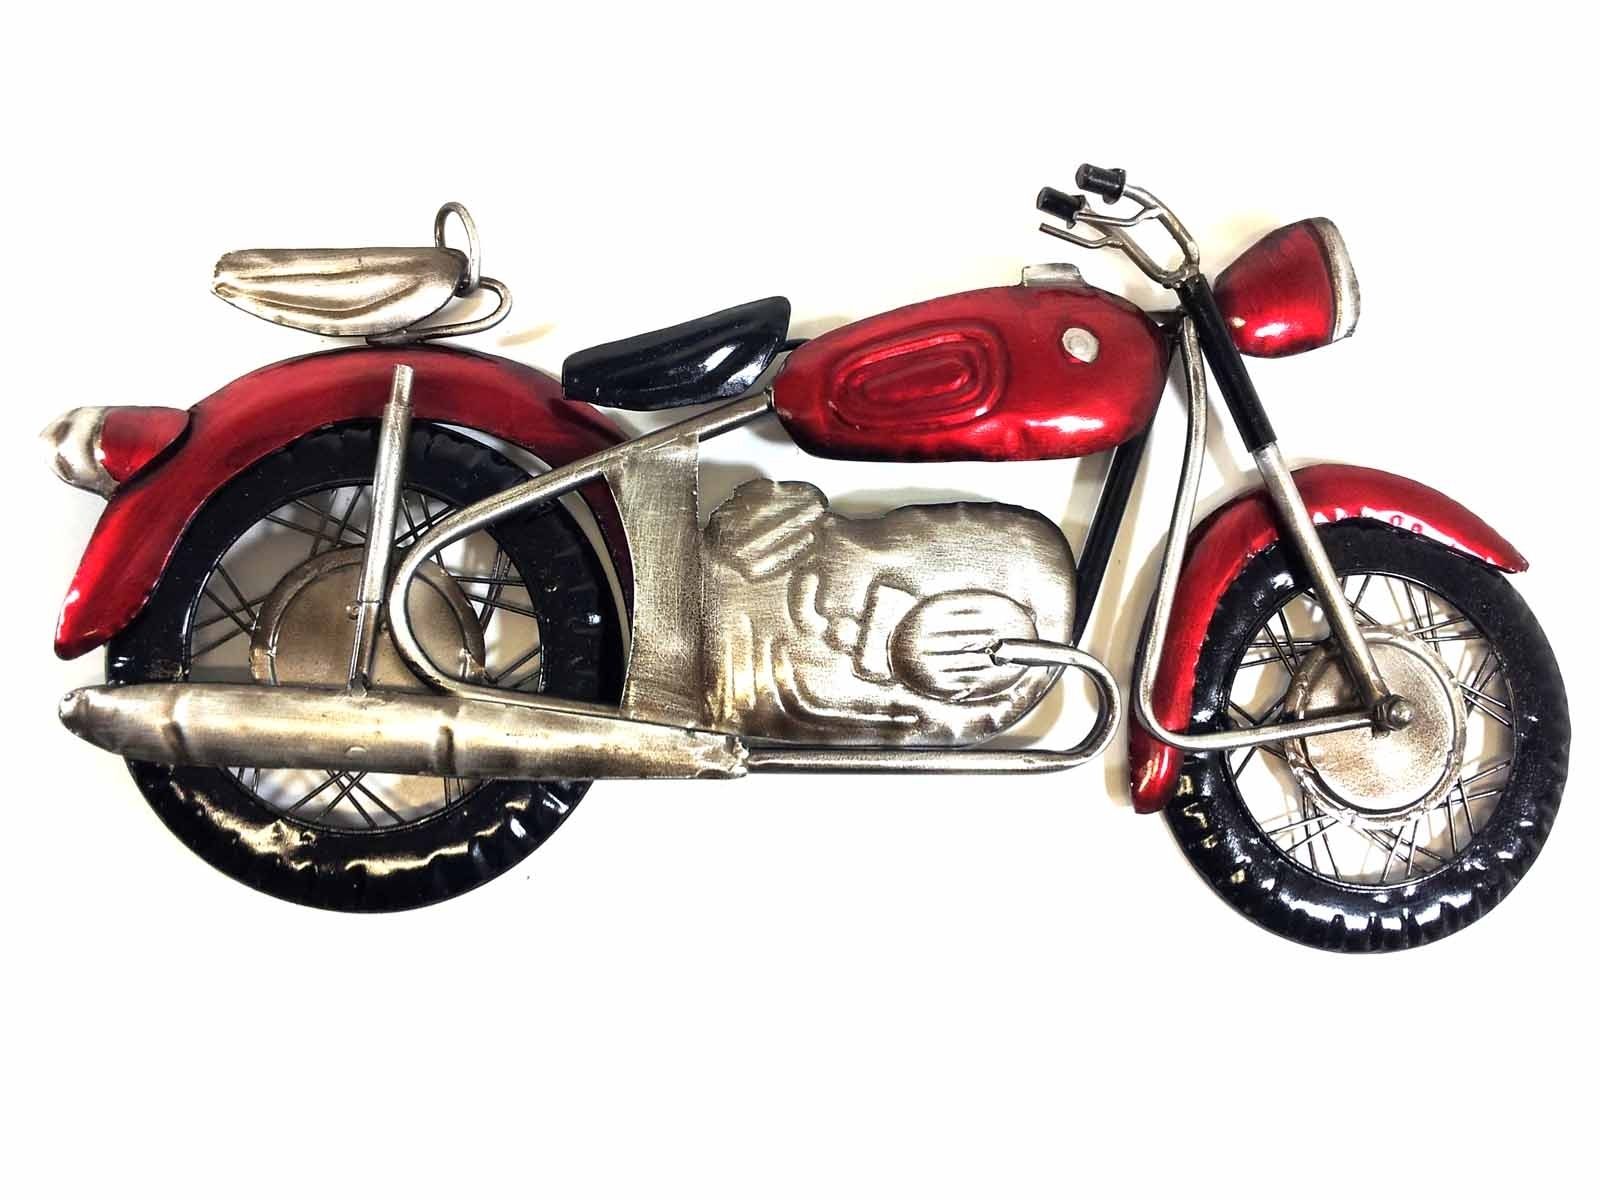 Metal Wall Art - Red Motorcycle intended for Motorcycle Wall Art (Image 10 of 20)